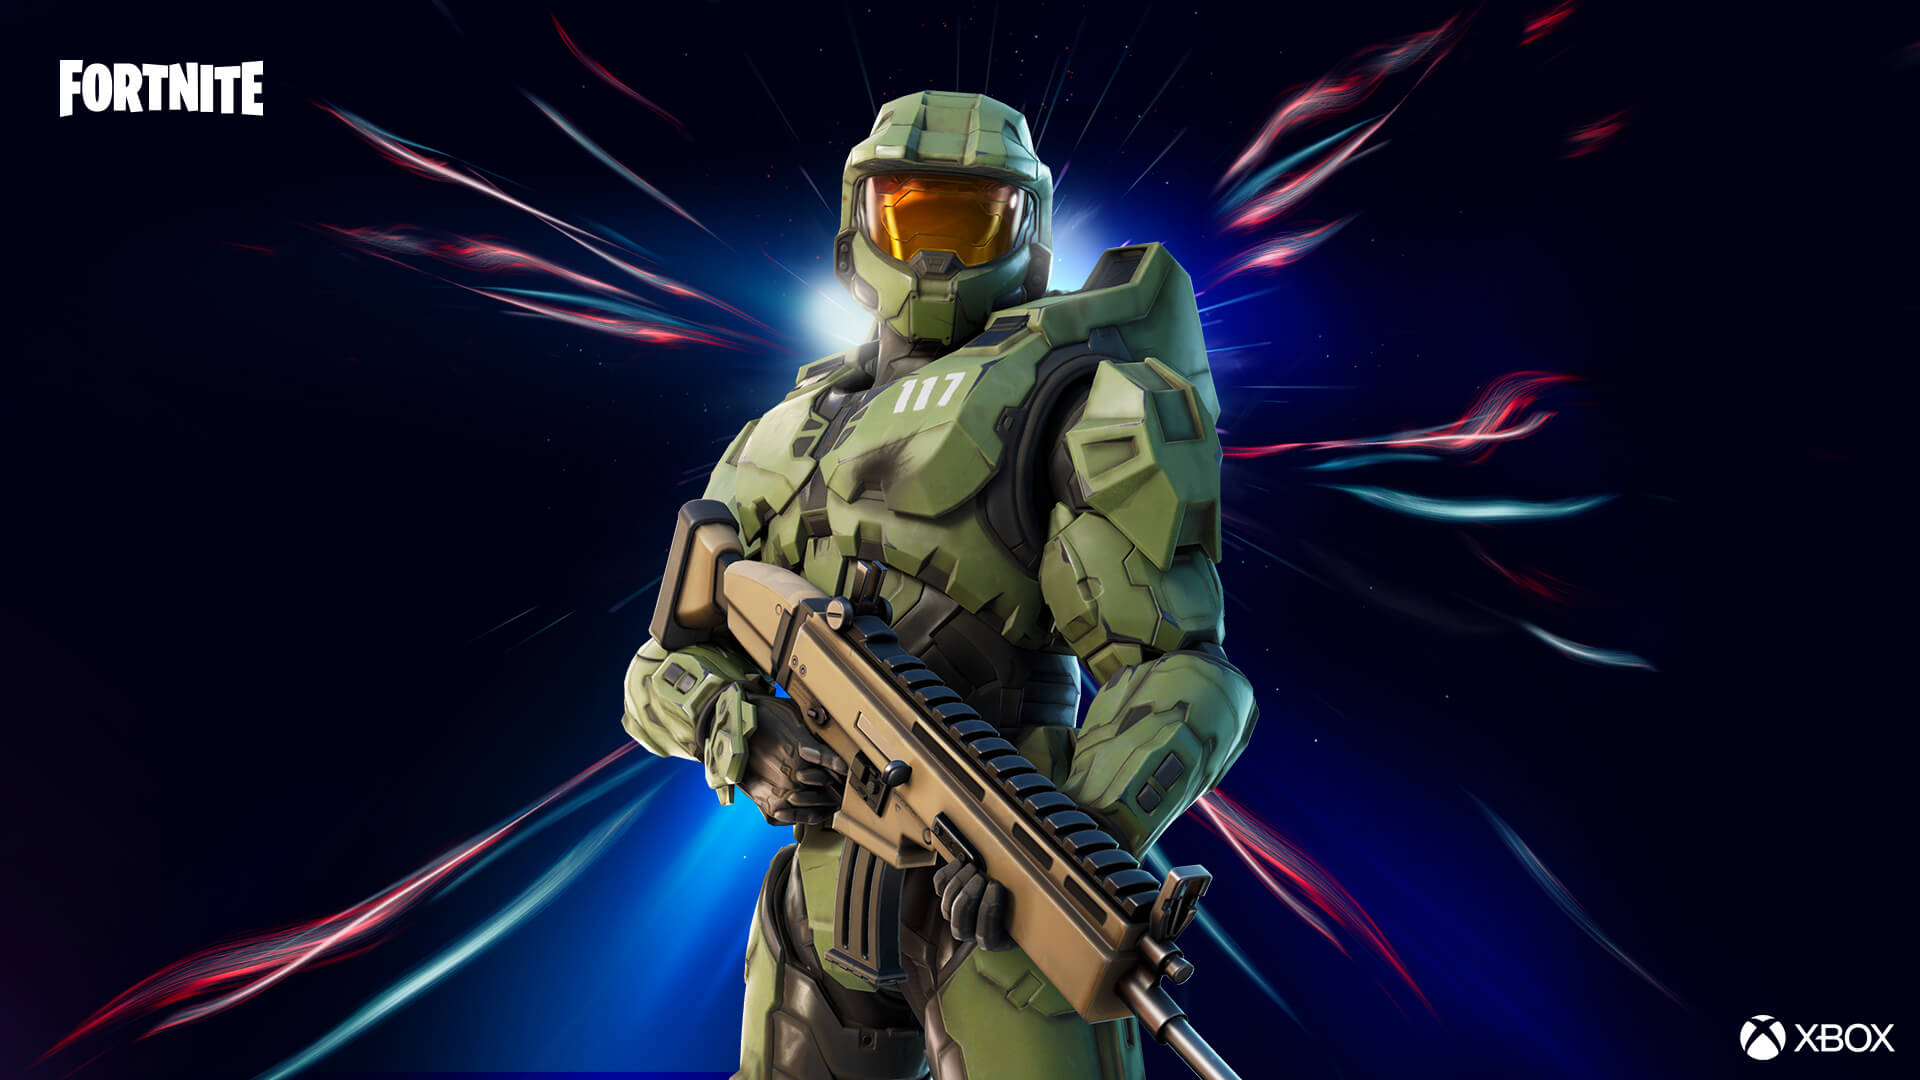 Master Chief Fortnite Outfit